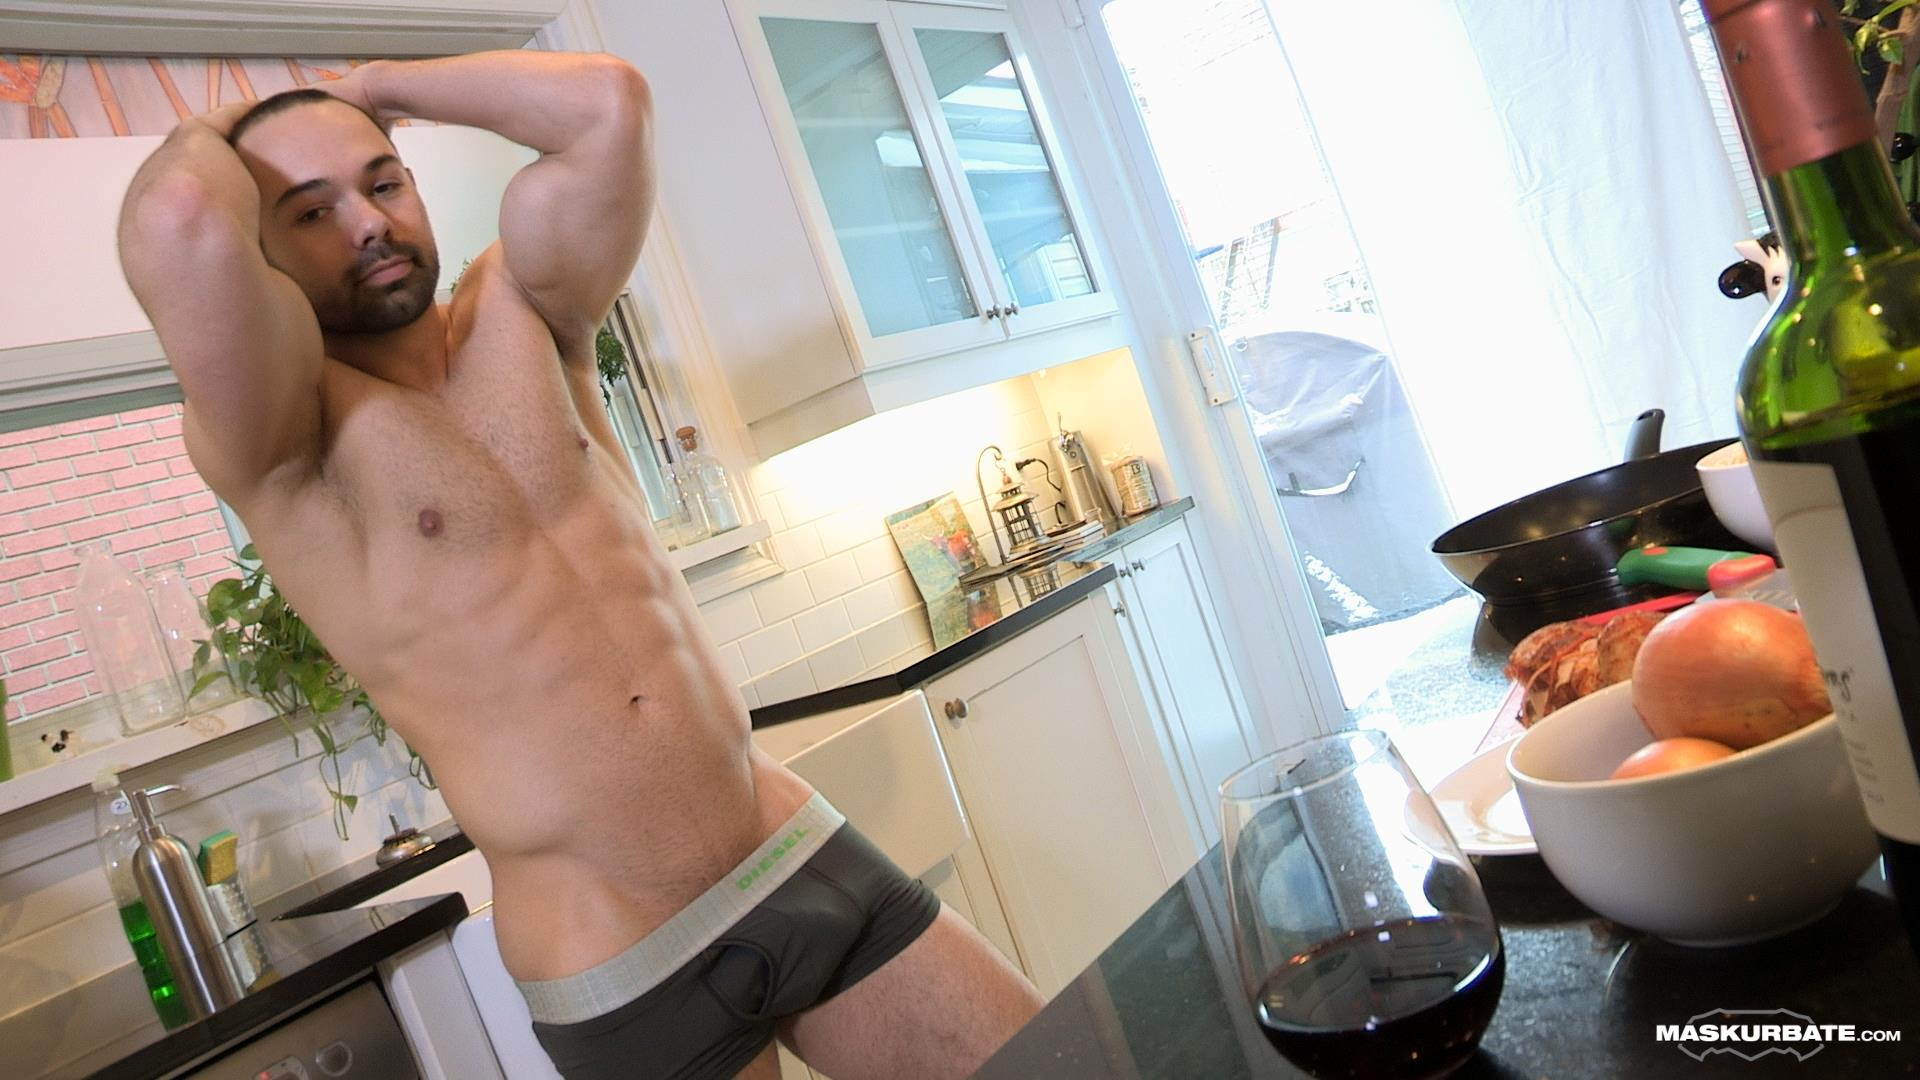 Maskurbate-Muscle-Hunk-With-A-Big-Uncut-Cock-Jerking-Off-Amateur-Gay-Porn-03 The Naked Chef Jerks His Big Uncut Cock In The Kitchen